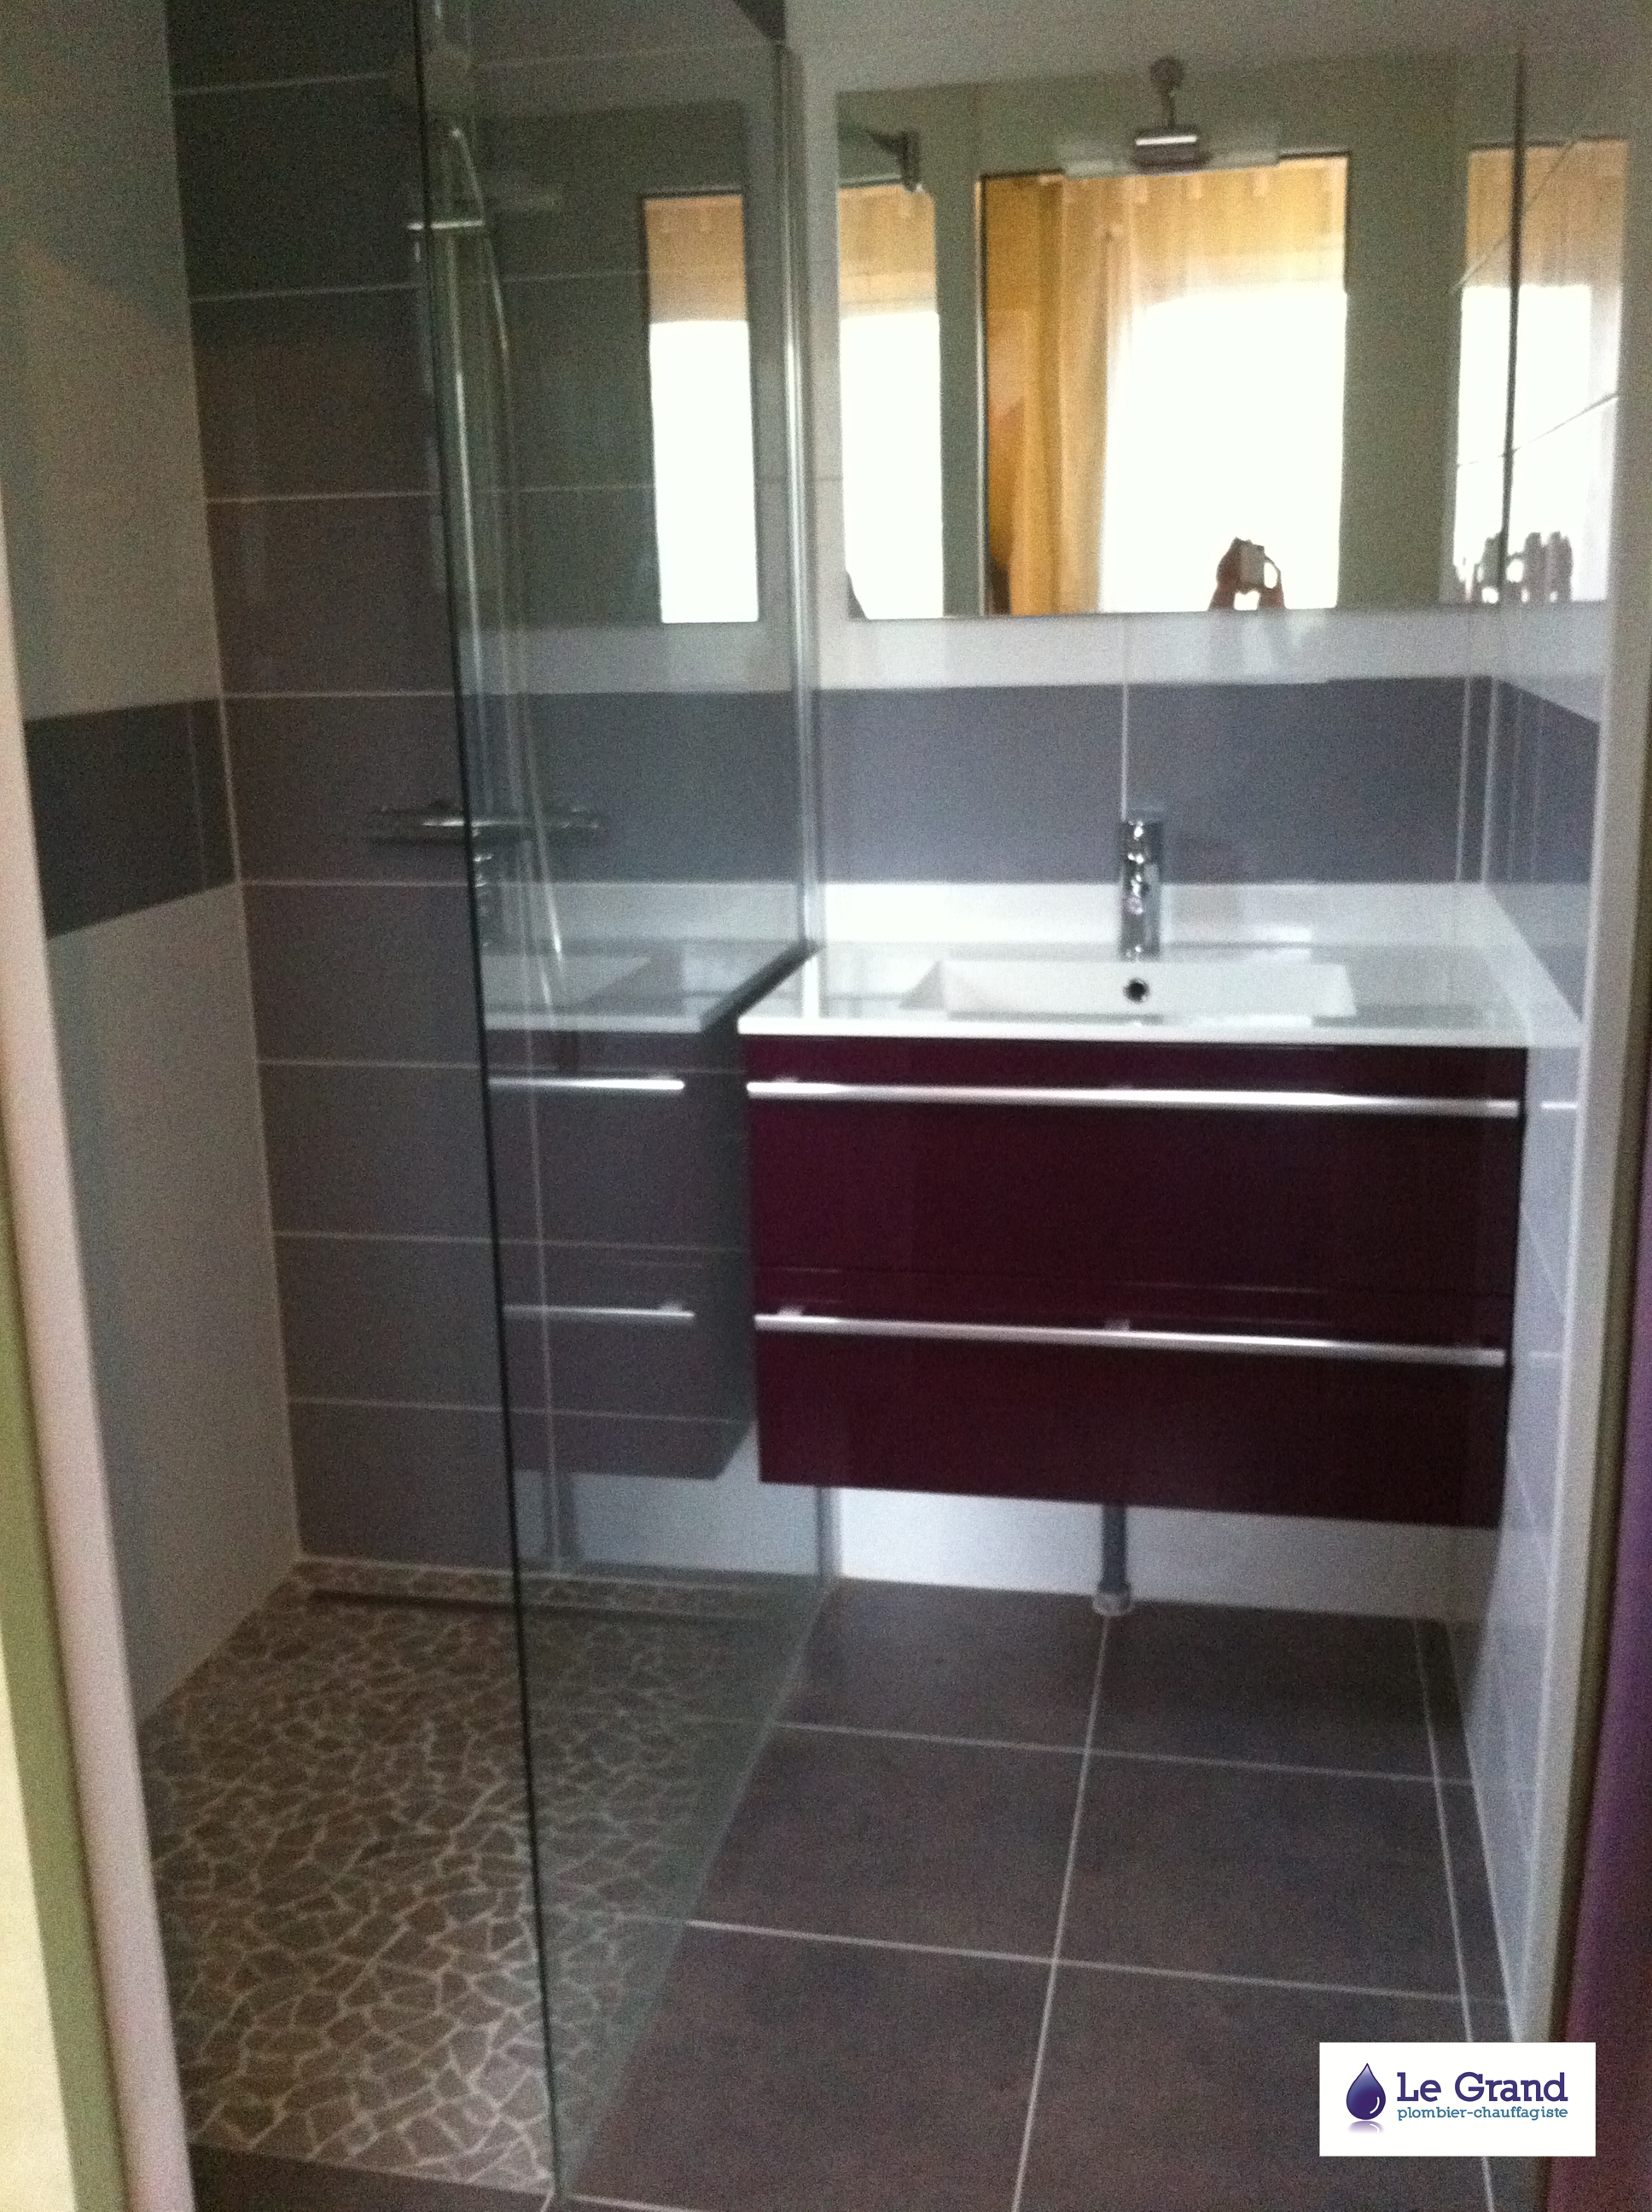 301 moved permanently for Salle bain douche italienne